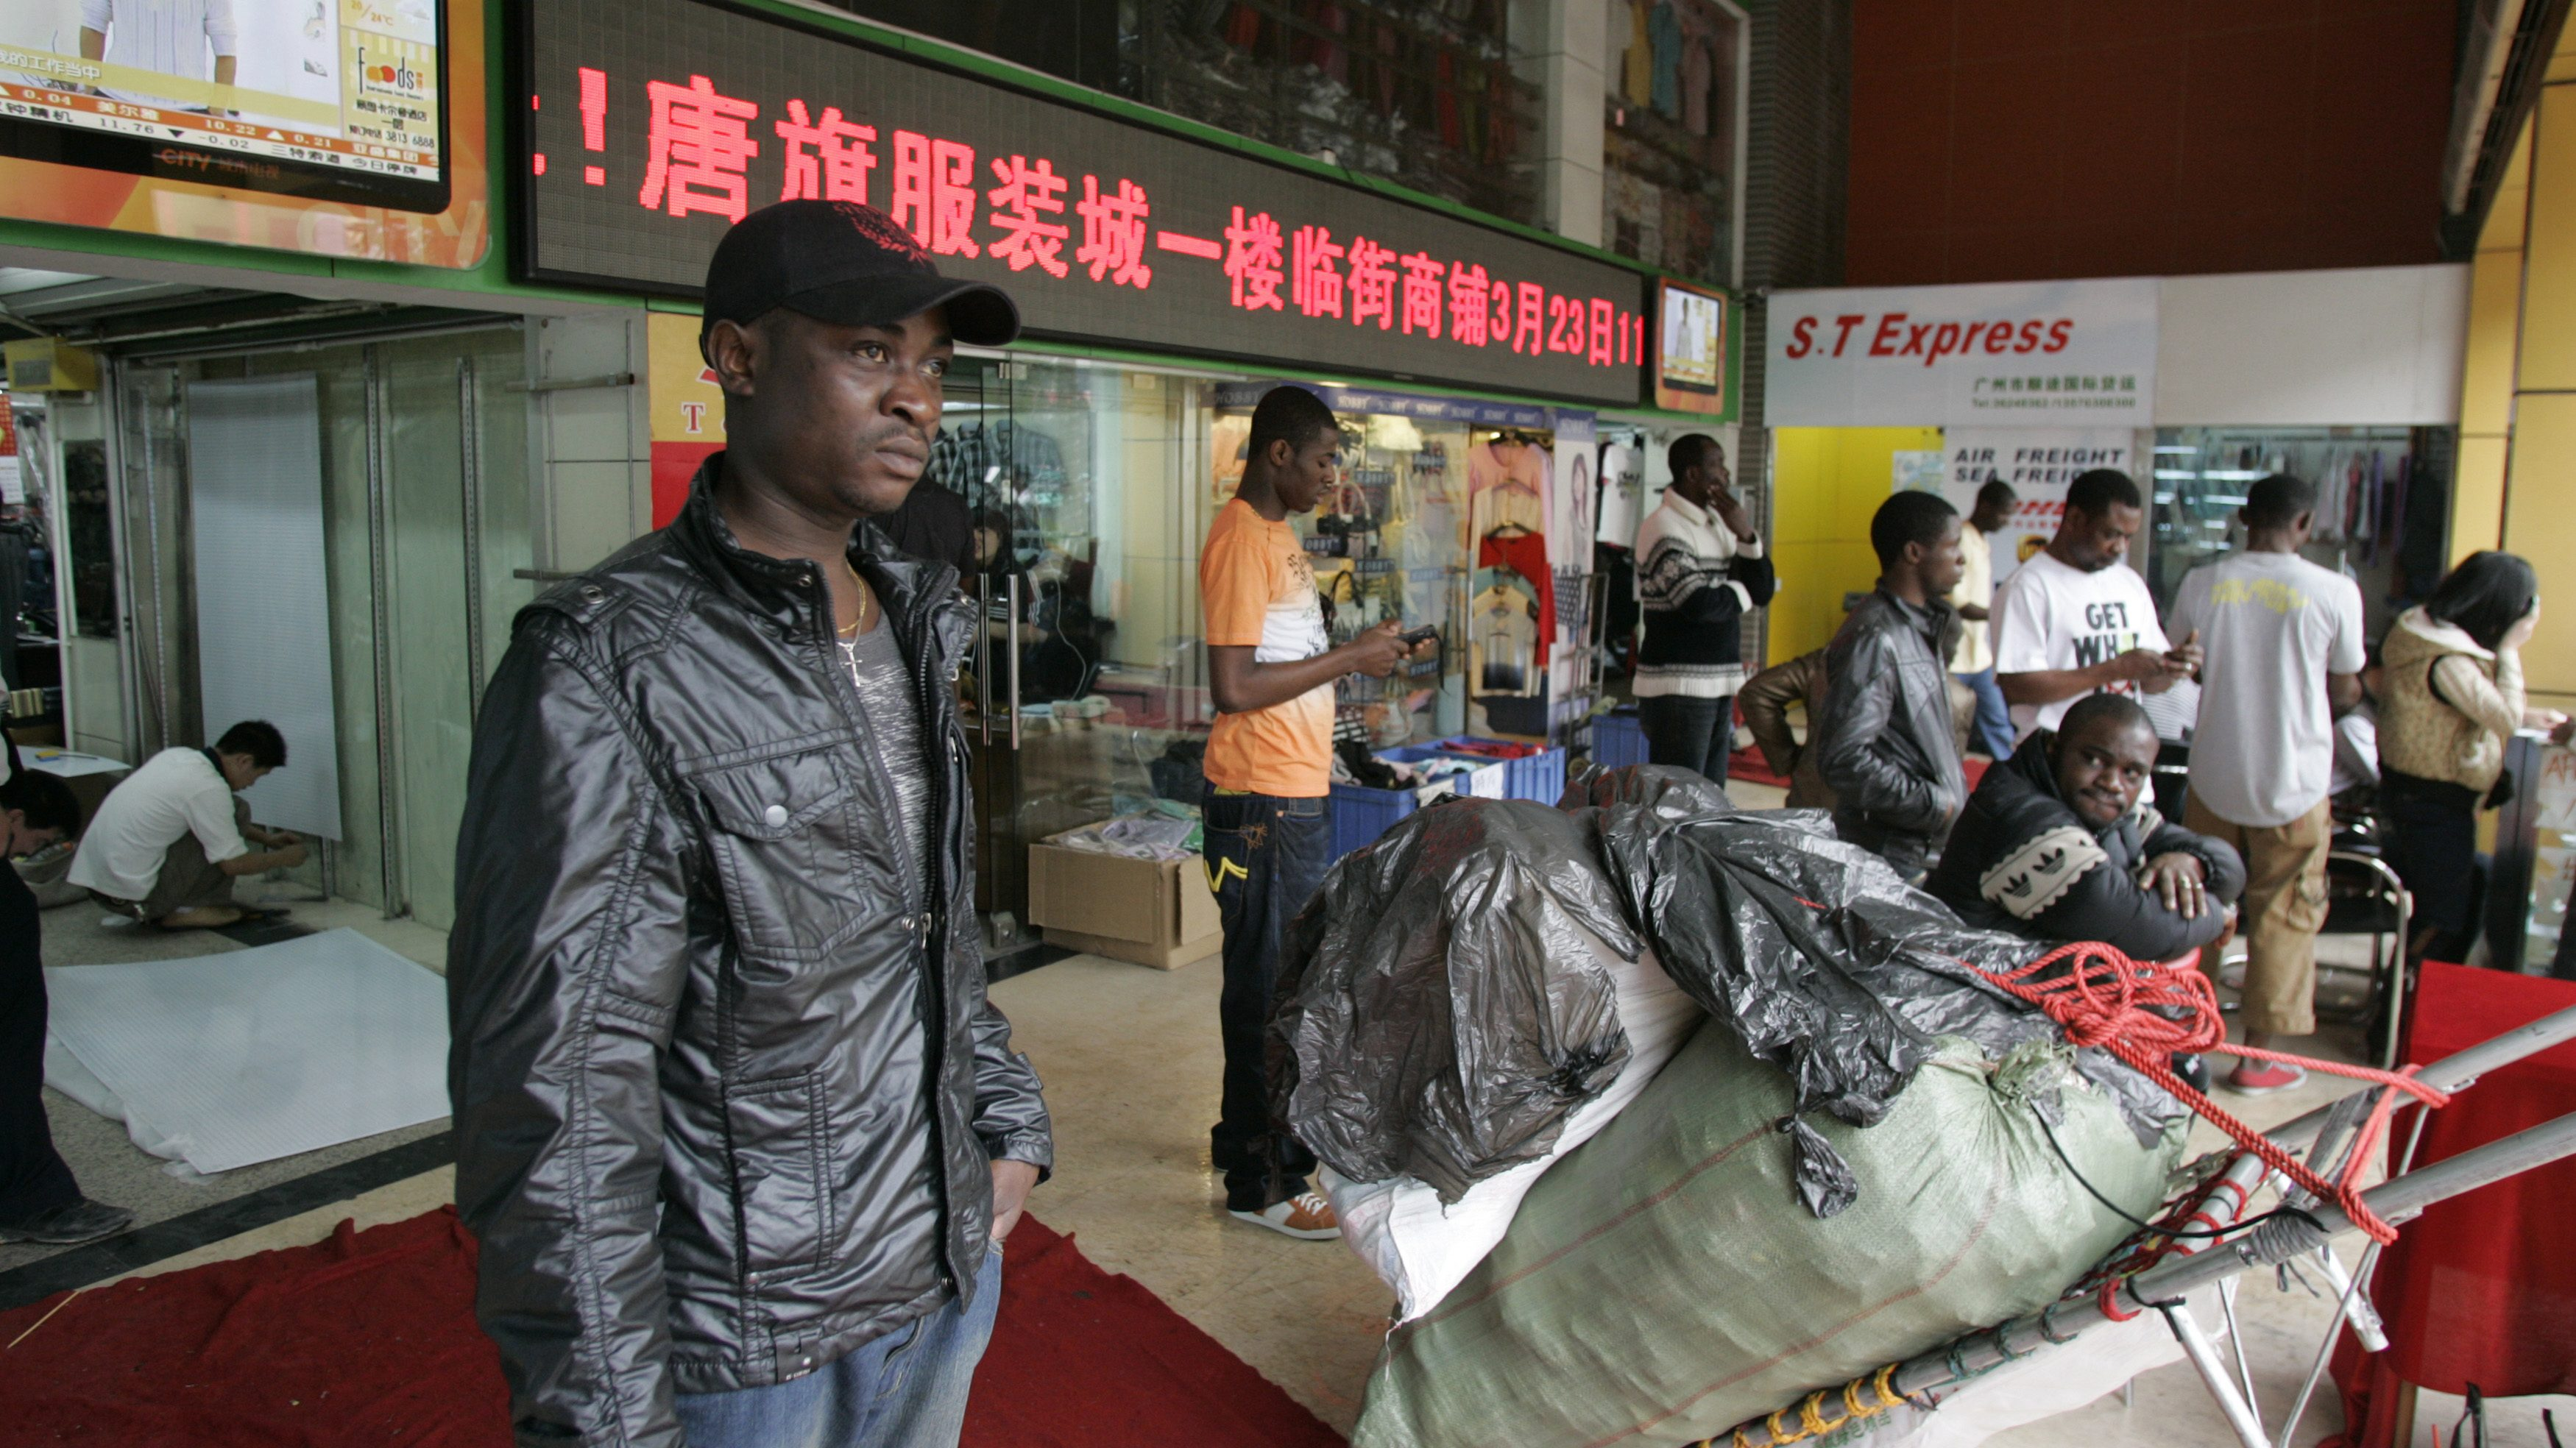 An African man stands near a shopping mall in the southern Chinese city of Guangzhou in Guangdong province March 27, 2009. In the past few years, tens of thousands of African and Arab traders have thronged to export hubs like Guangzhou and Yiwu to seek their fortunes, sourcing cheap China-made goods back home to massive markups in a growing, lucrative trade. Picture taken March 27, 2009. To match feature